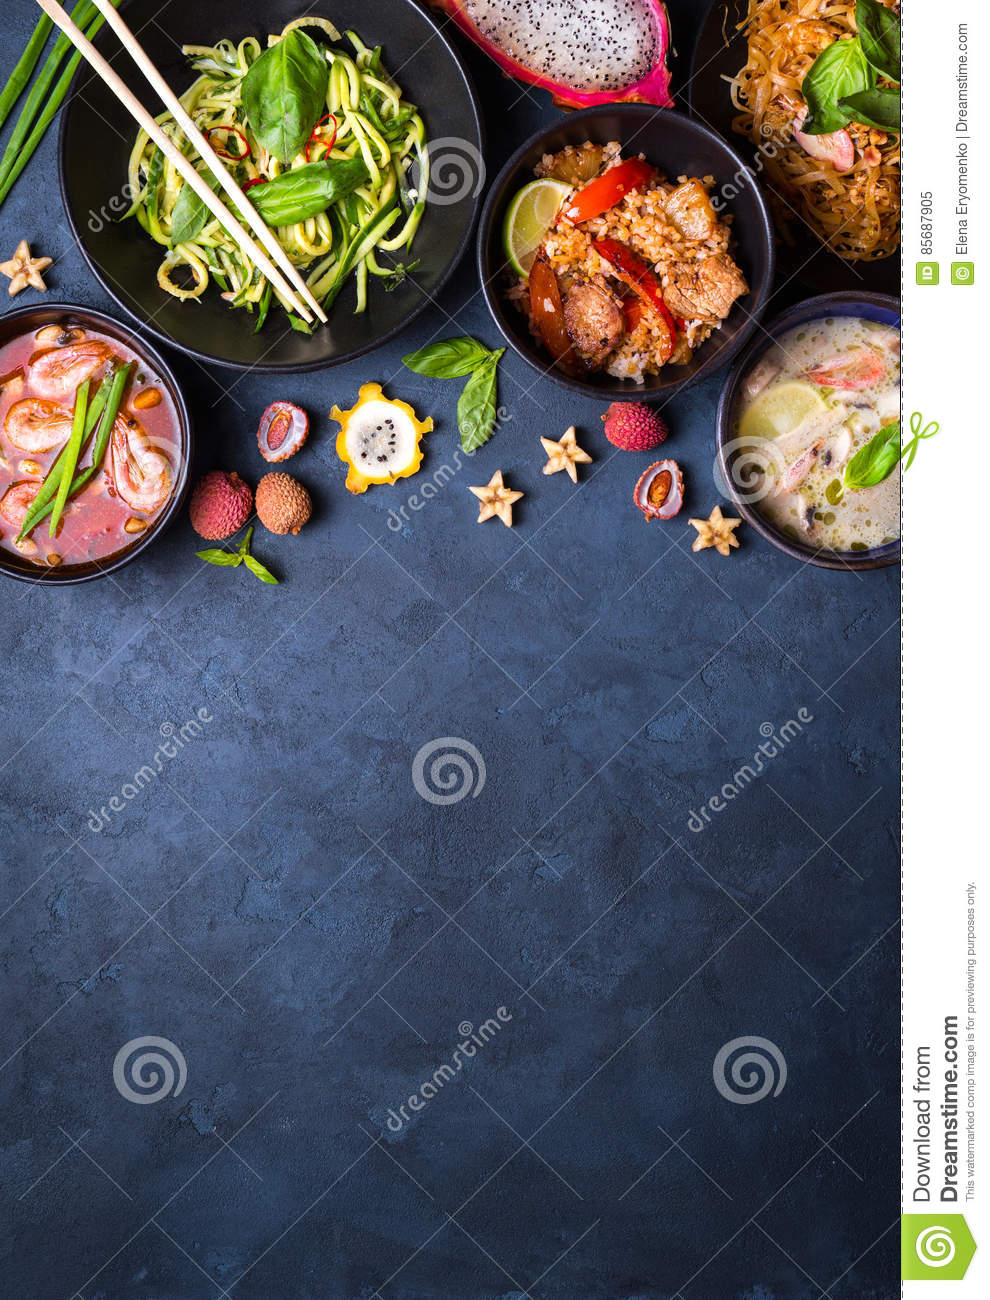 Thai food background stock image. Image of cooking, exotic - 85687905